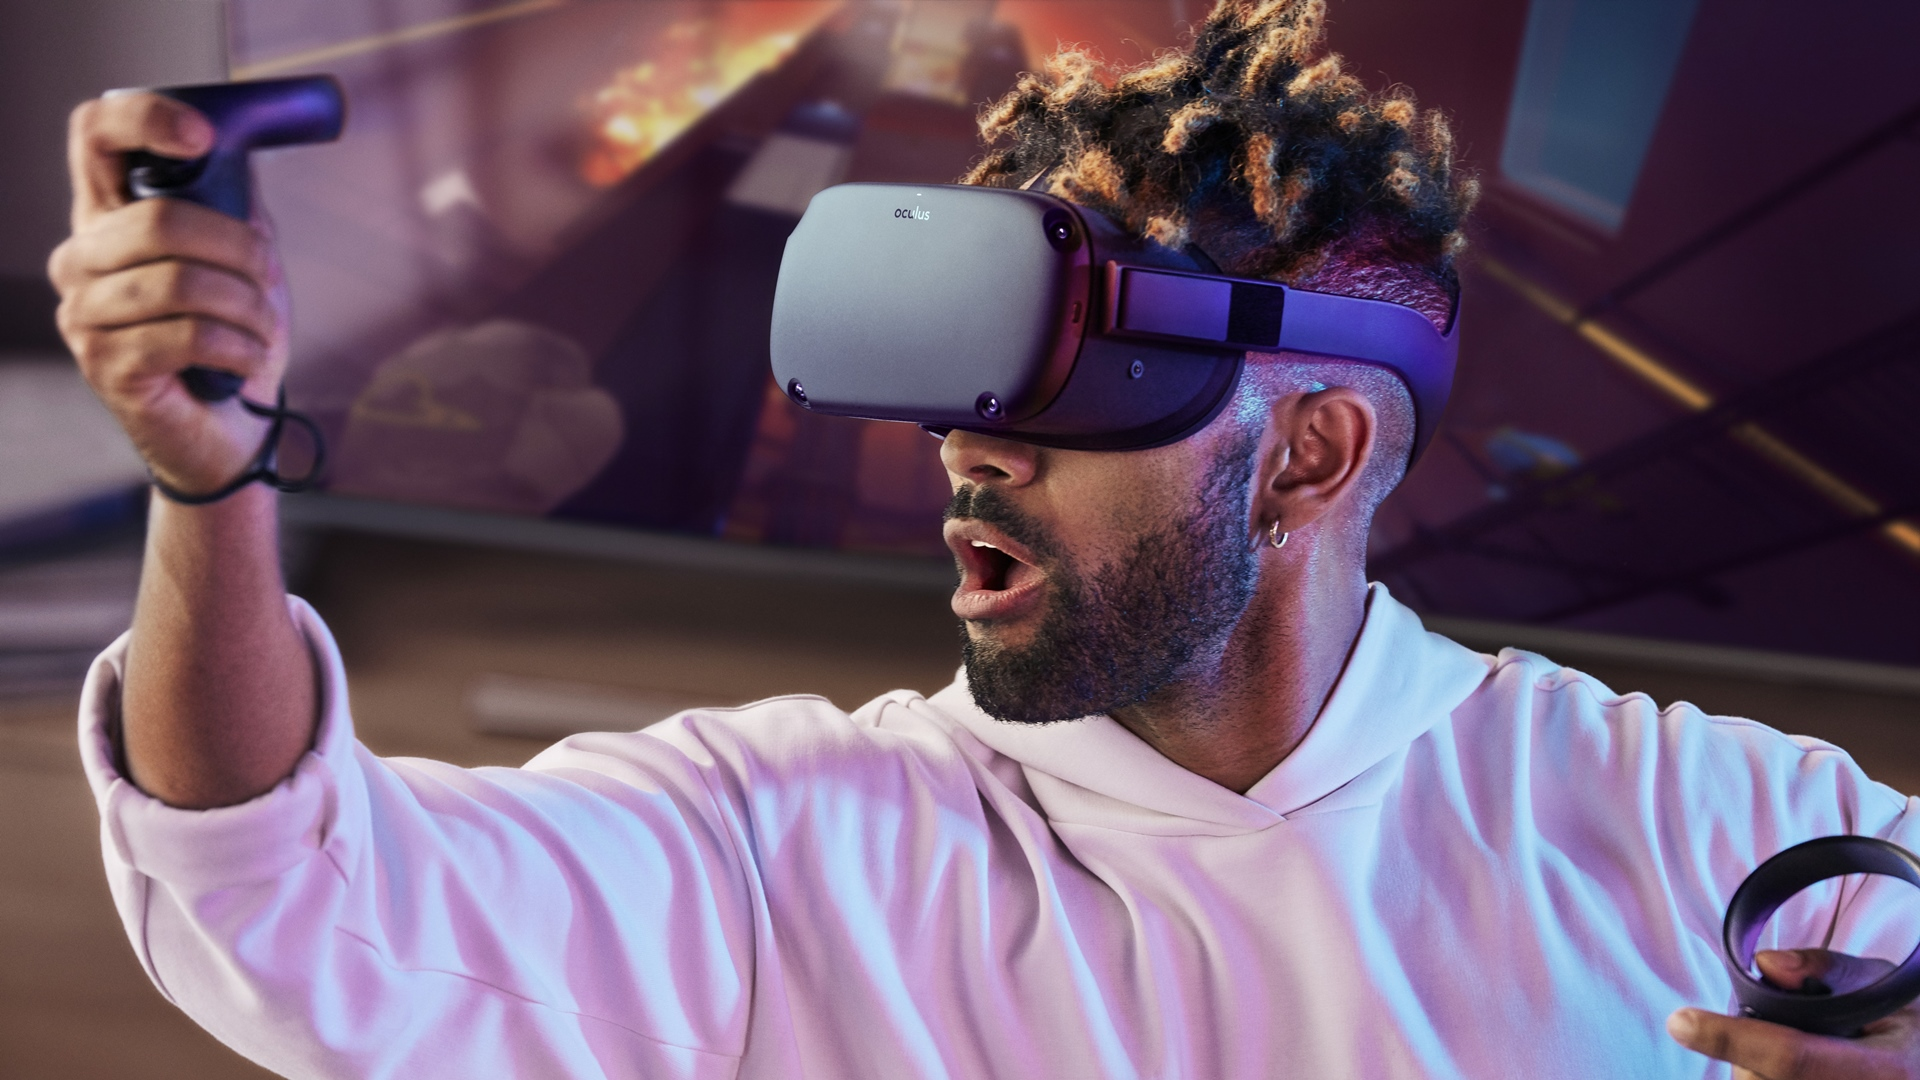 ba0a890bd05d The Oculus Quest is a VR headset that doesn t need a PC or a smartphone